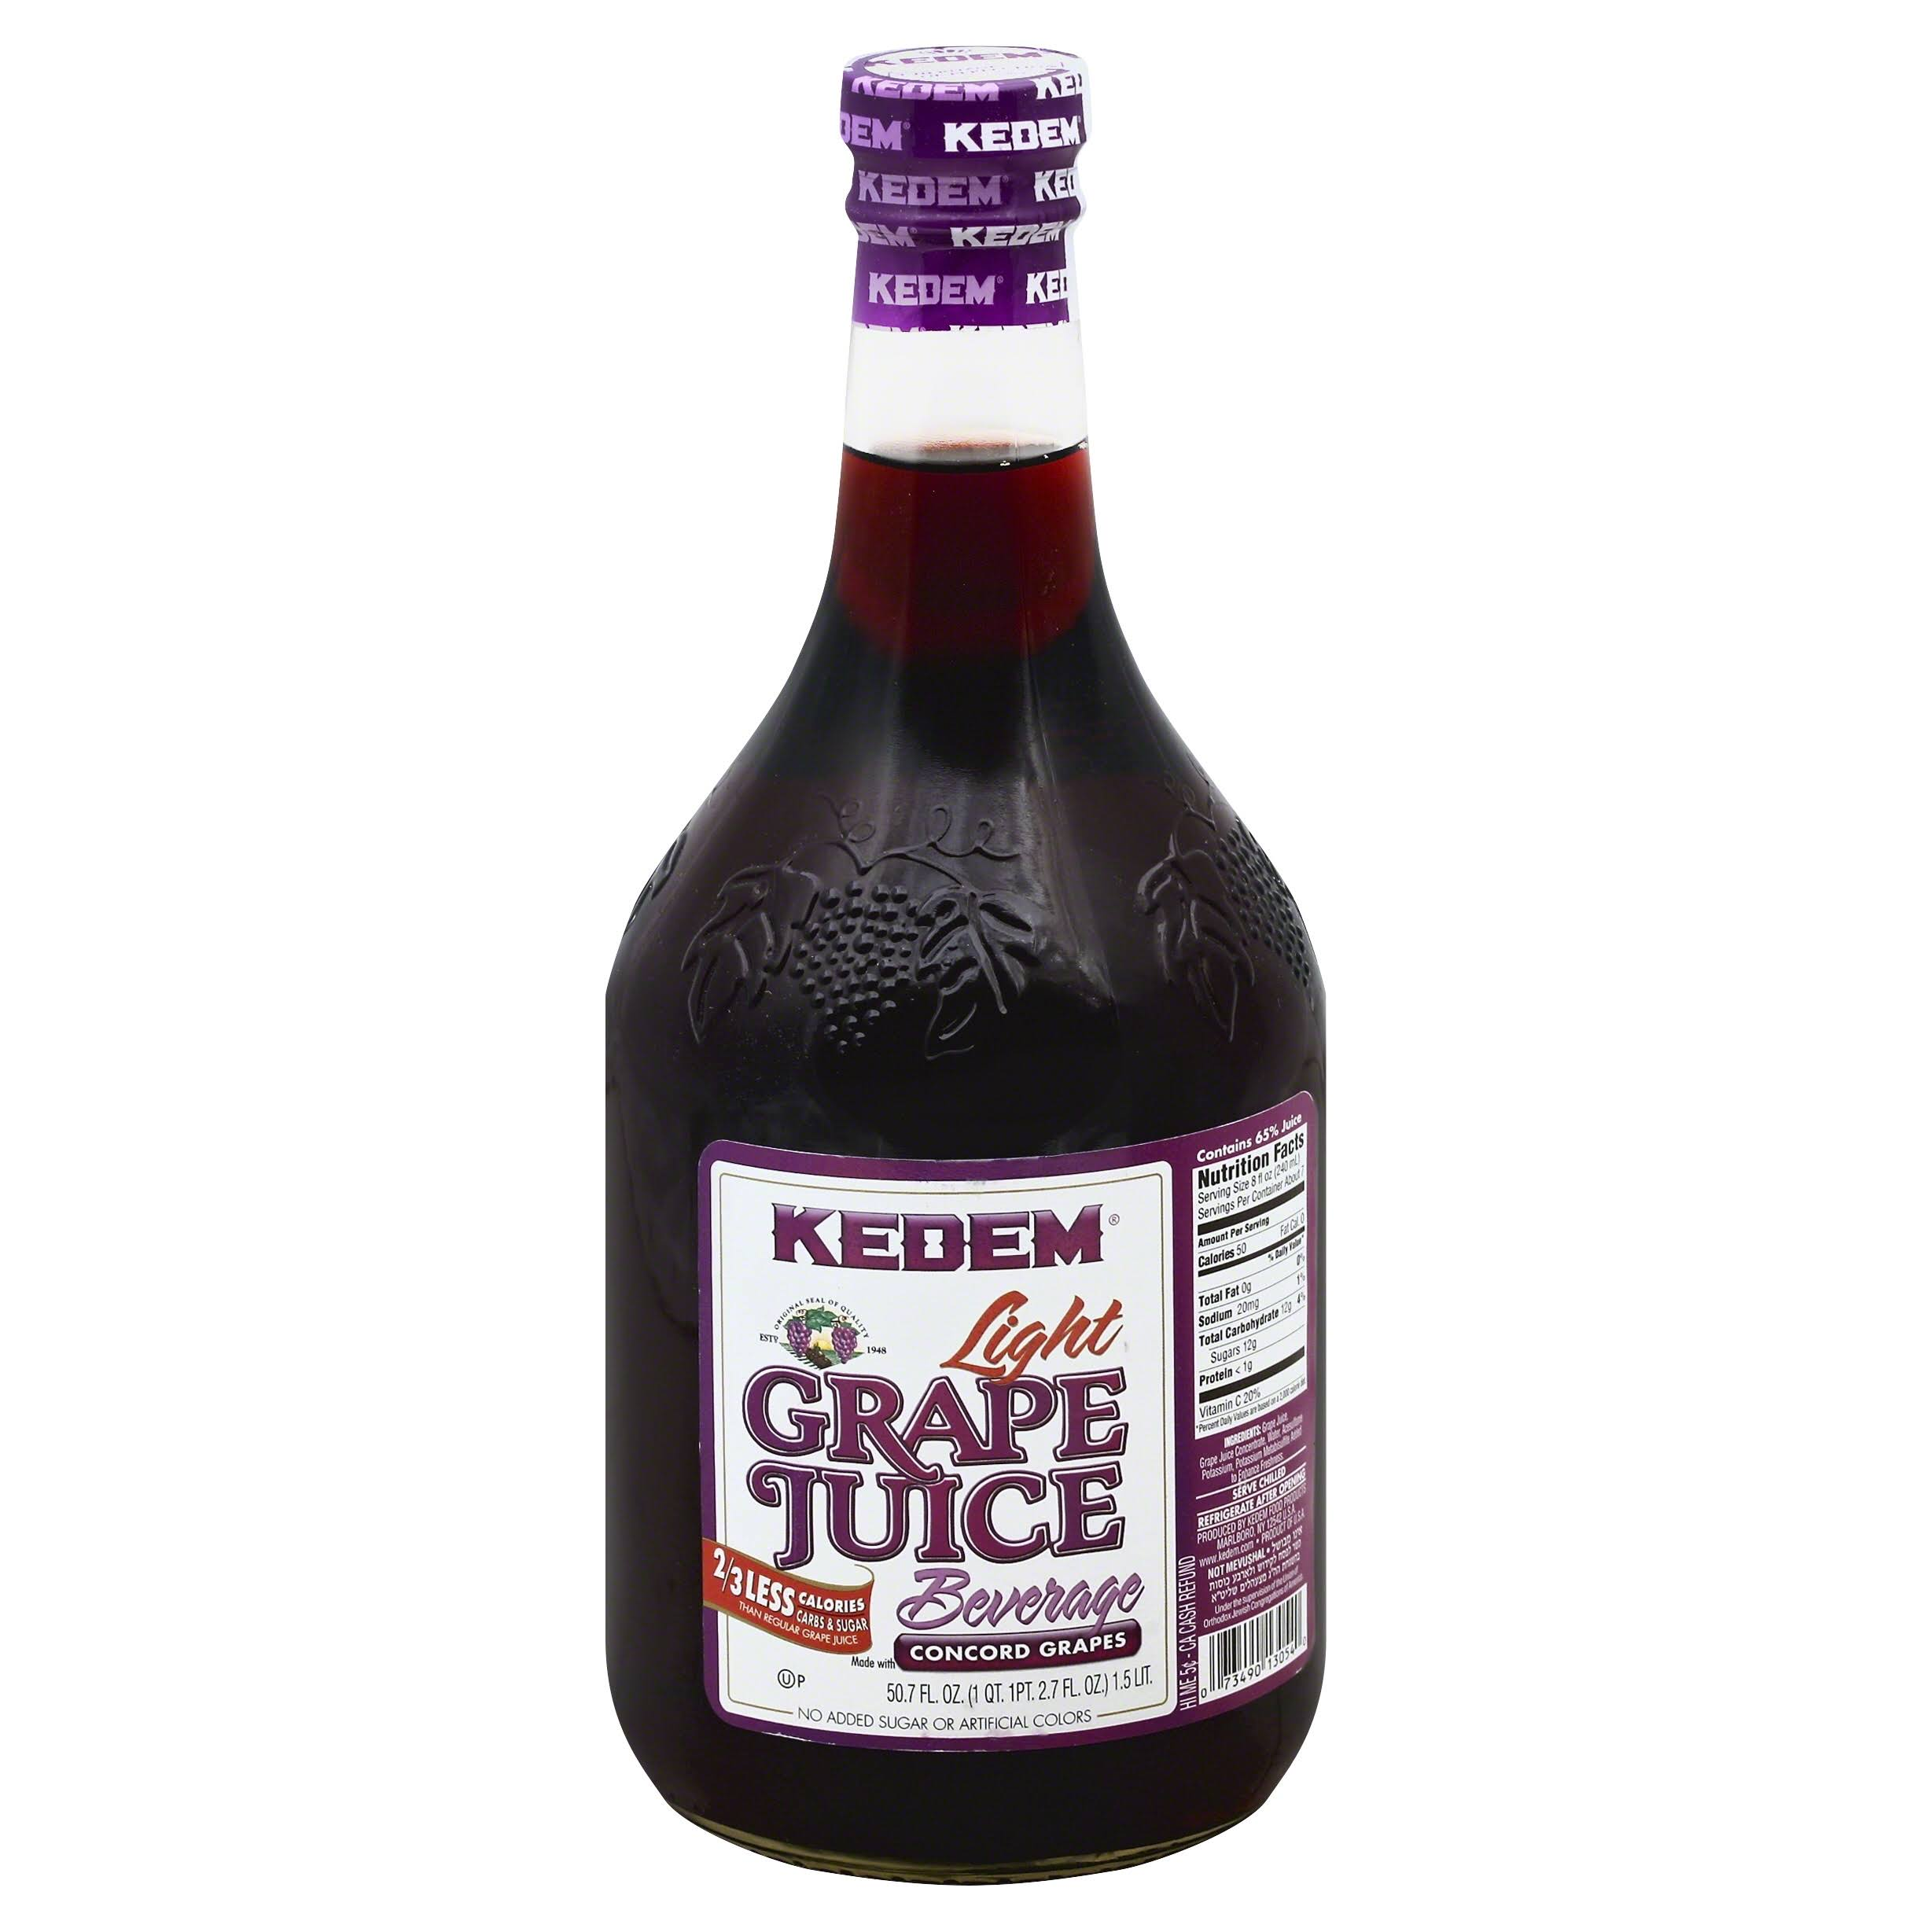 Kedem Juice Beverage, Grape, Light - 50.7 fl oz